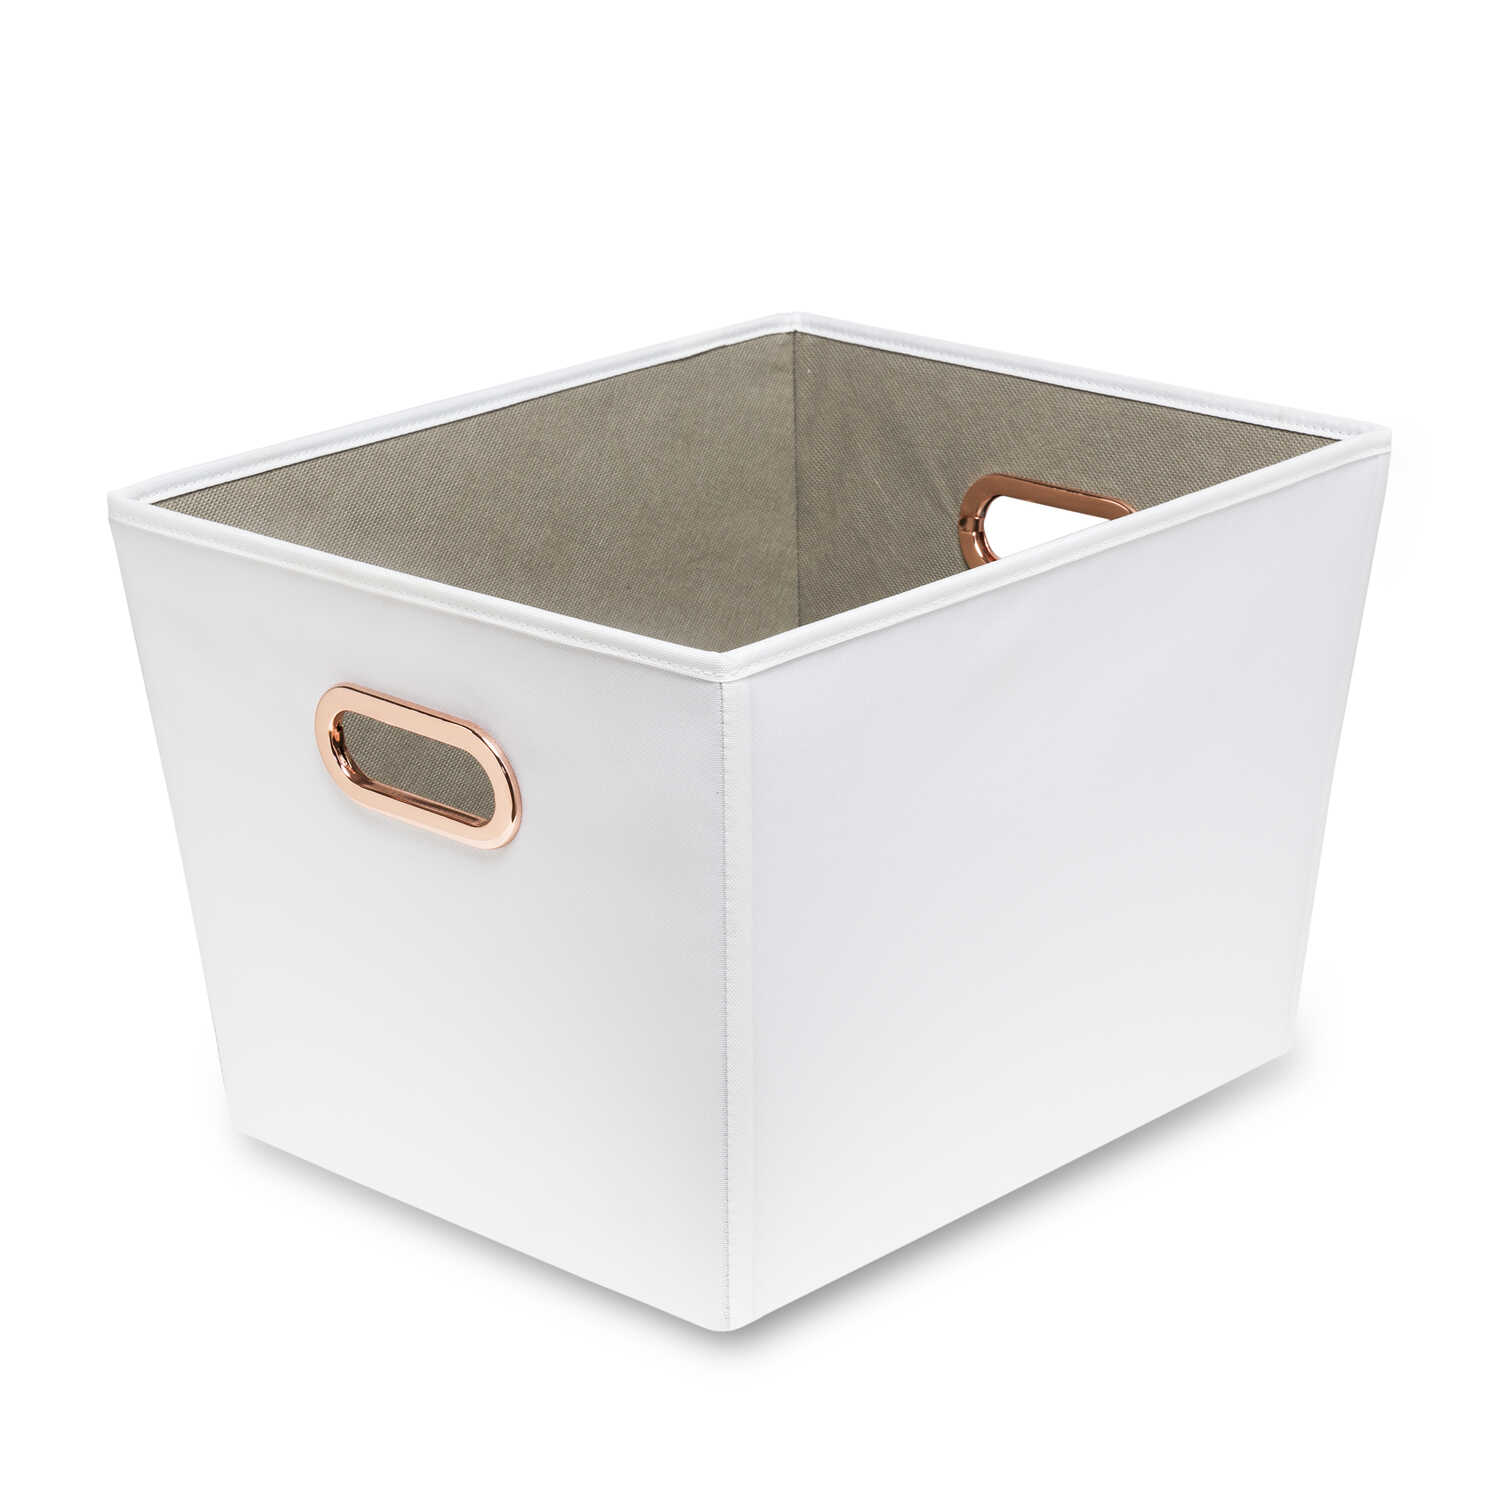 Honey Can Do  11 in. H x 13 in. W x 16 in. D Tote Bin